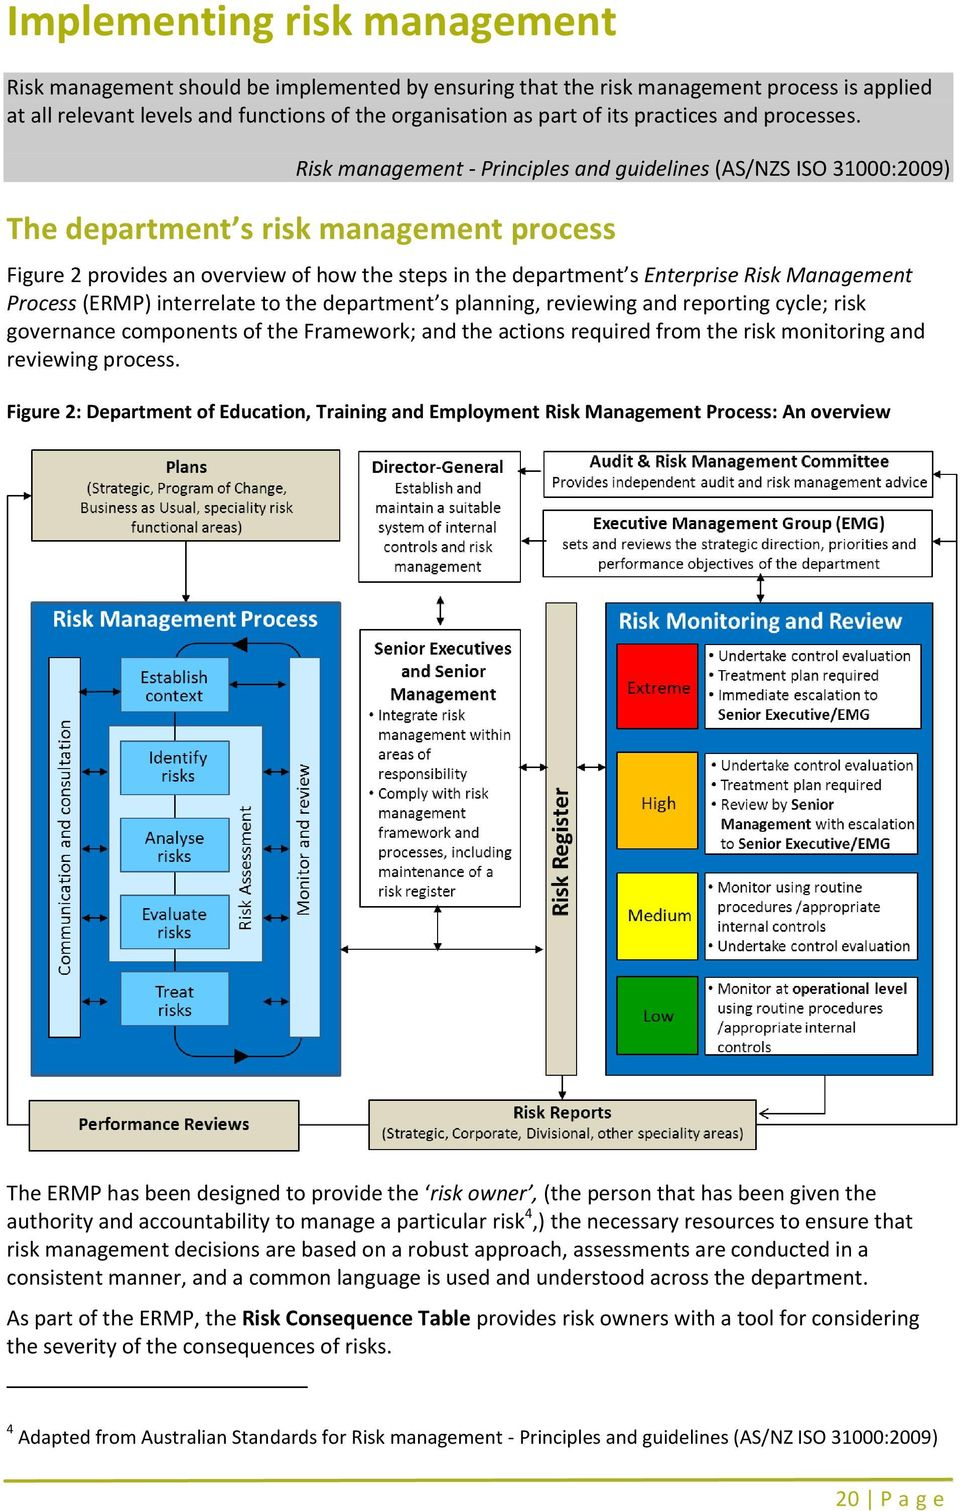 Risk management - Principles and guidelines (AS/NZS ISO 31000:2009) The department s risk management process Figure 2 provides an overview of how the steps in the department s Enterprise Risk